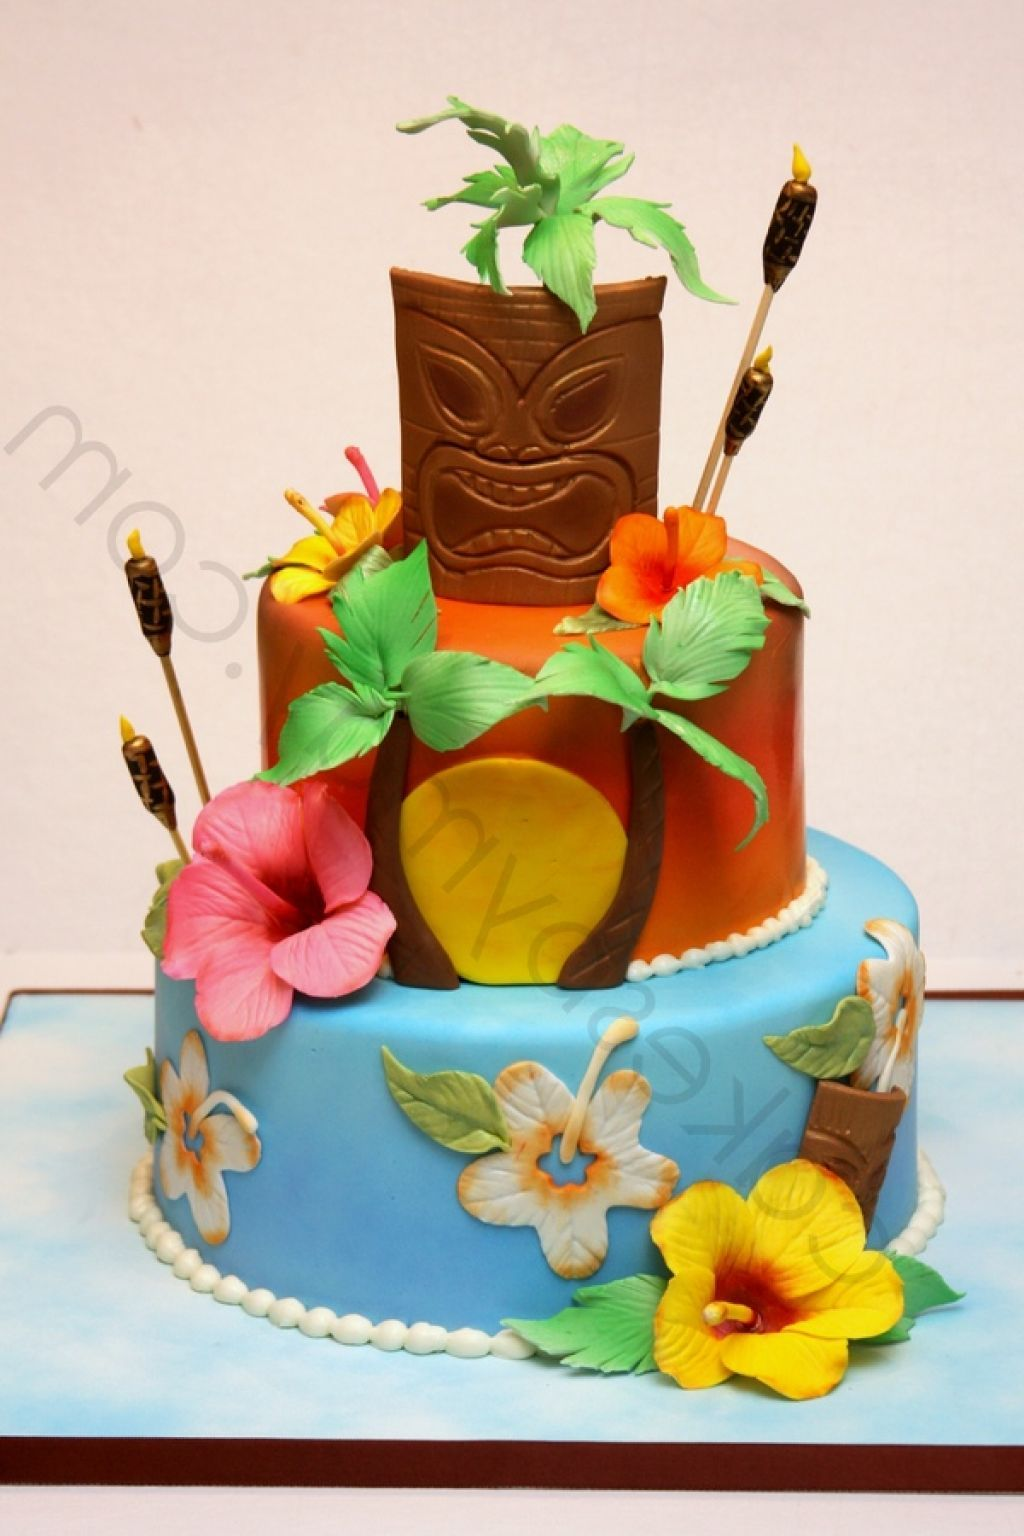 Hawaiian Themed Birthday Cakes For Kids Cake Design and Cookies